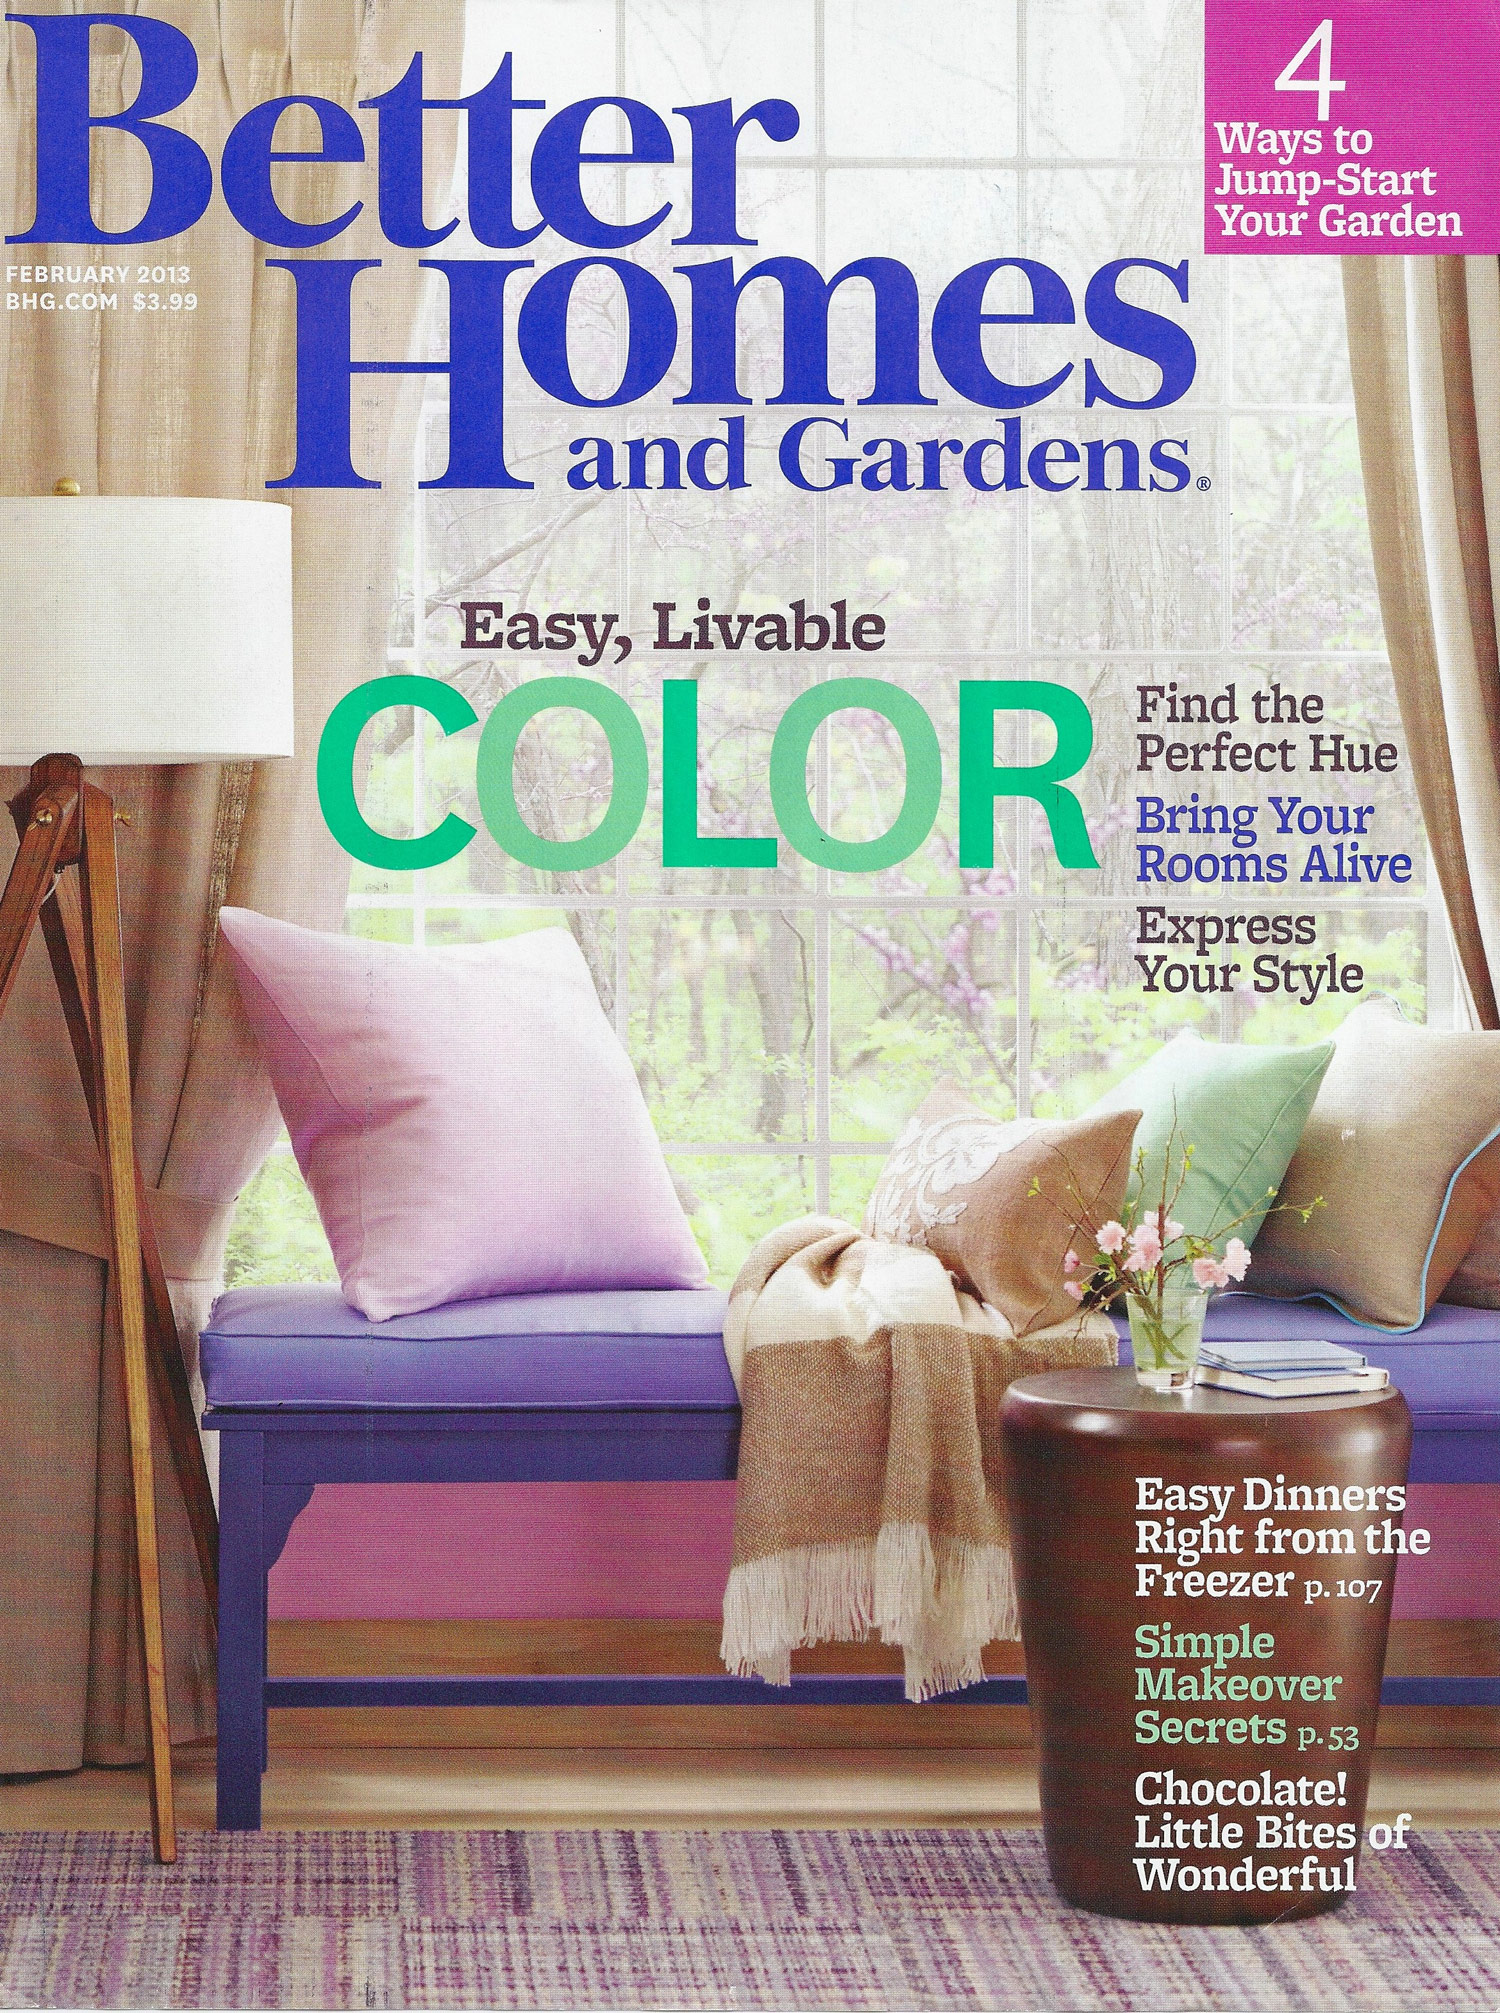 Twx better homes twx better homes magazine rewards center Bhg homes